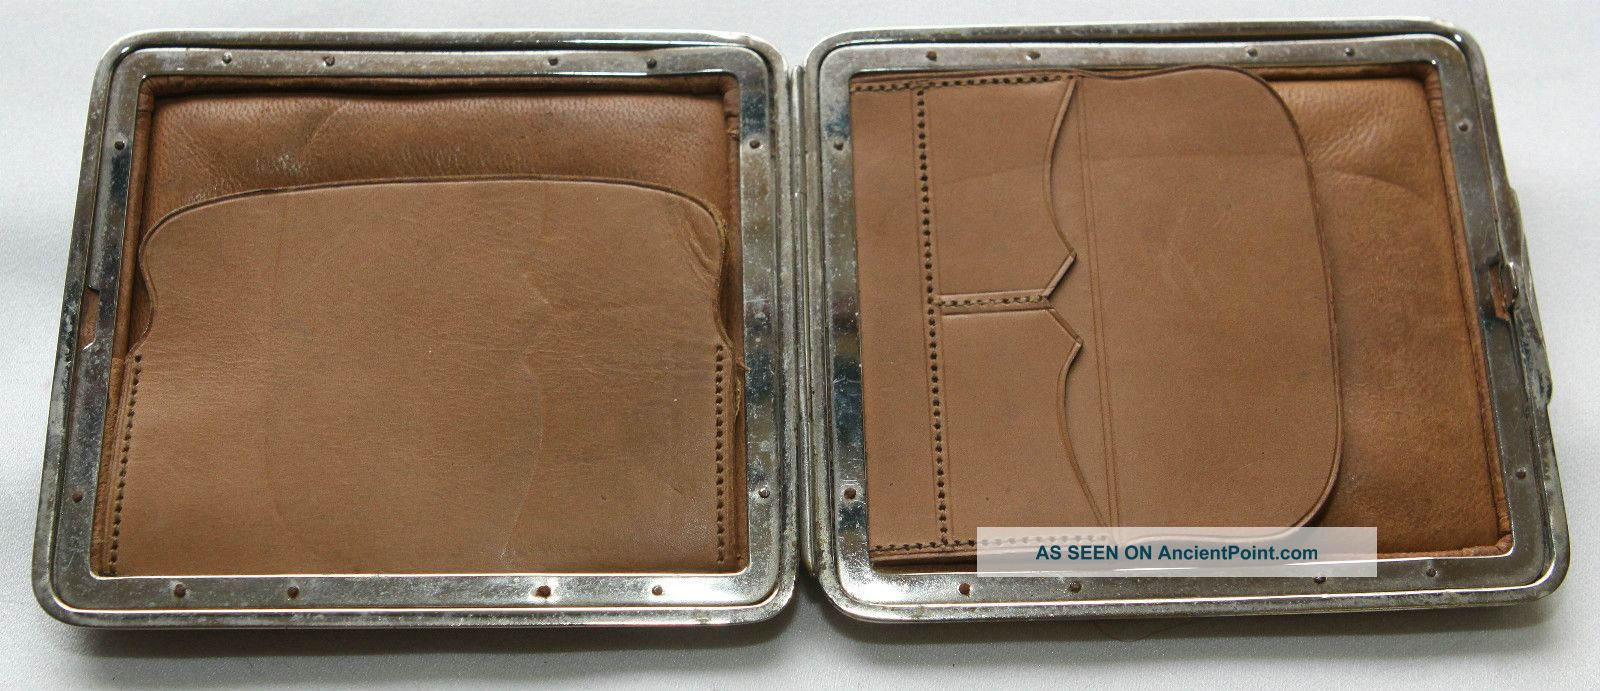 Edwardian Card Case - Grain Leather Exterior With Lid Leather Interior - Twin Pocket Card Cases photo